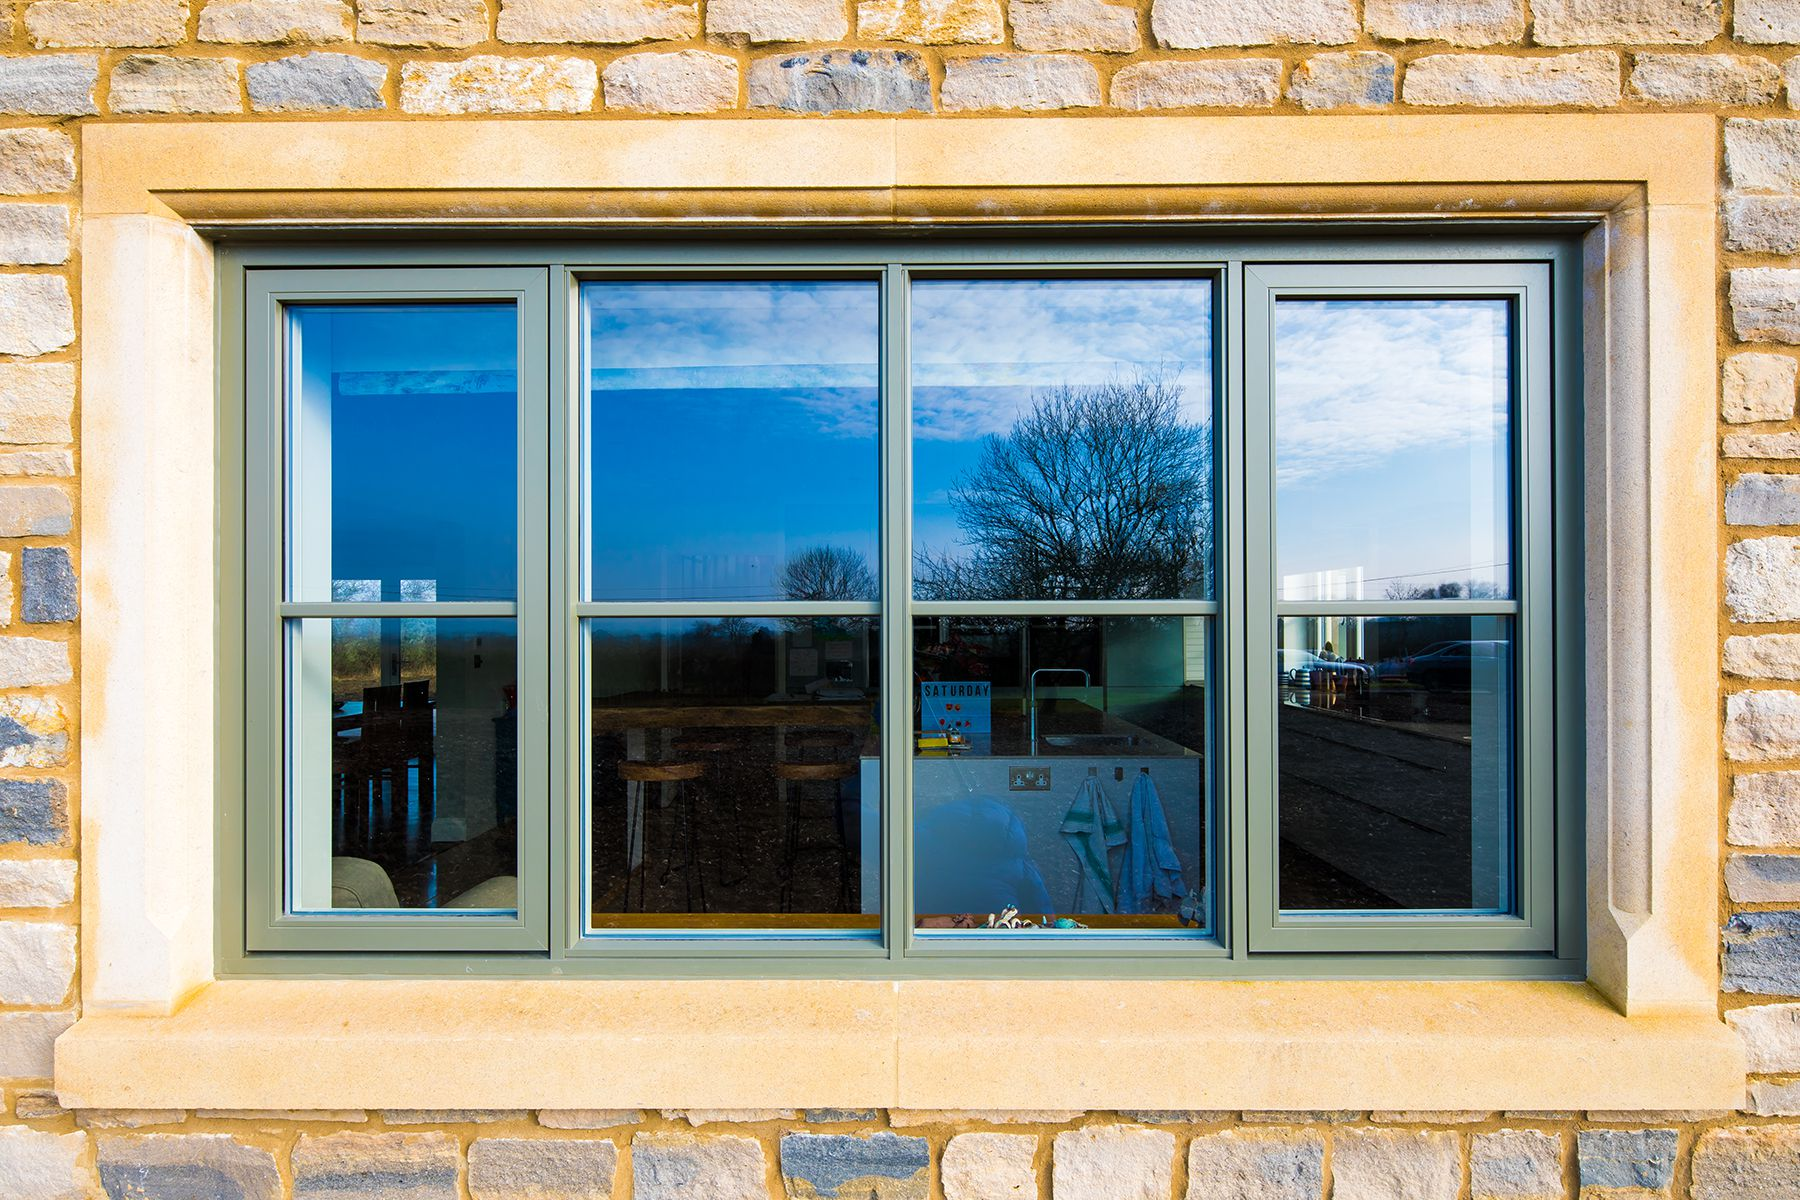 composite flush sash withdow with astrical bar